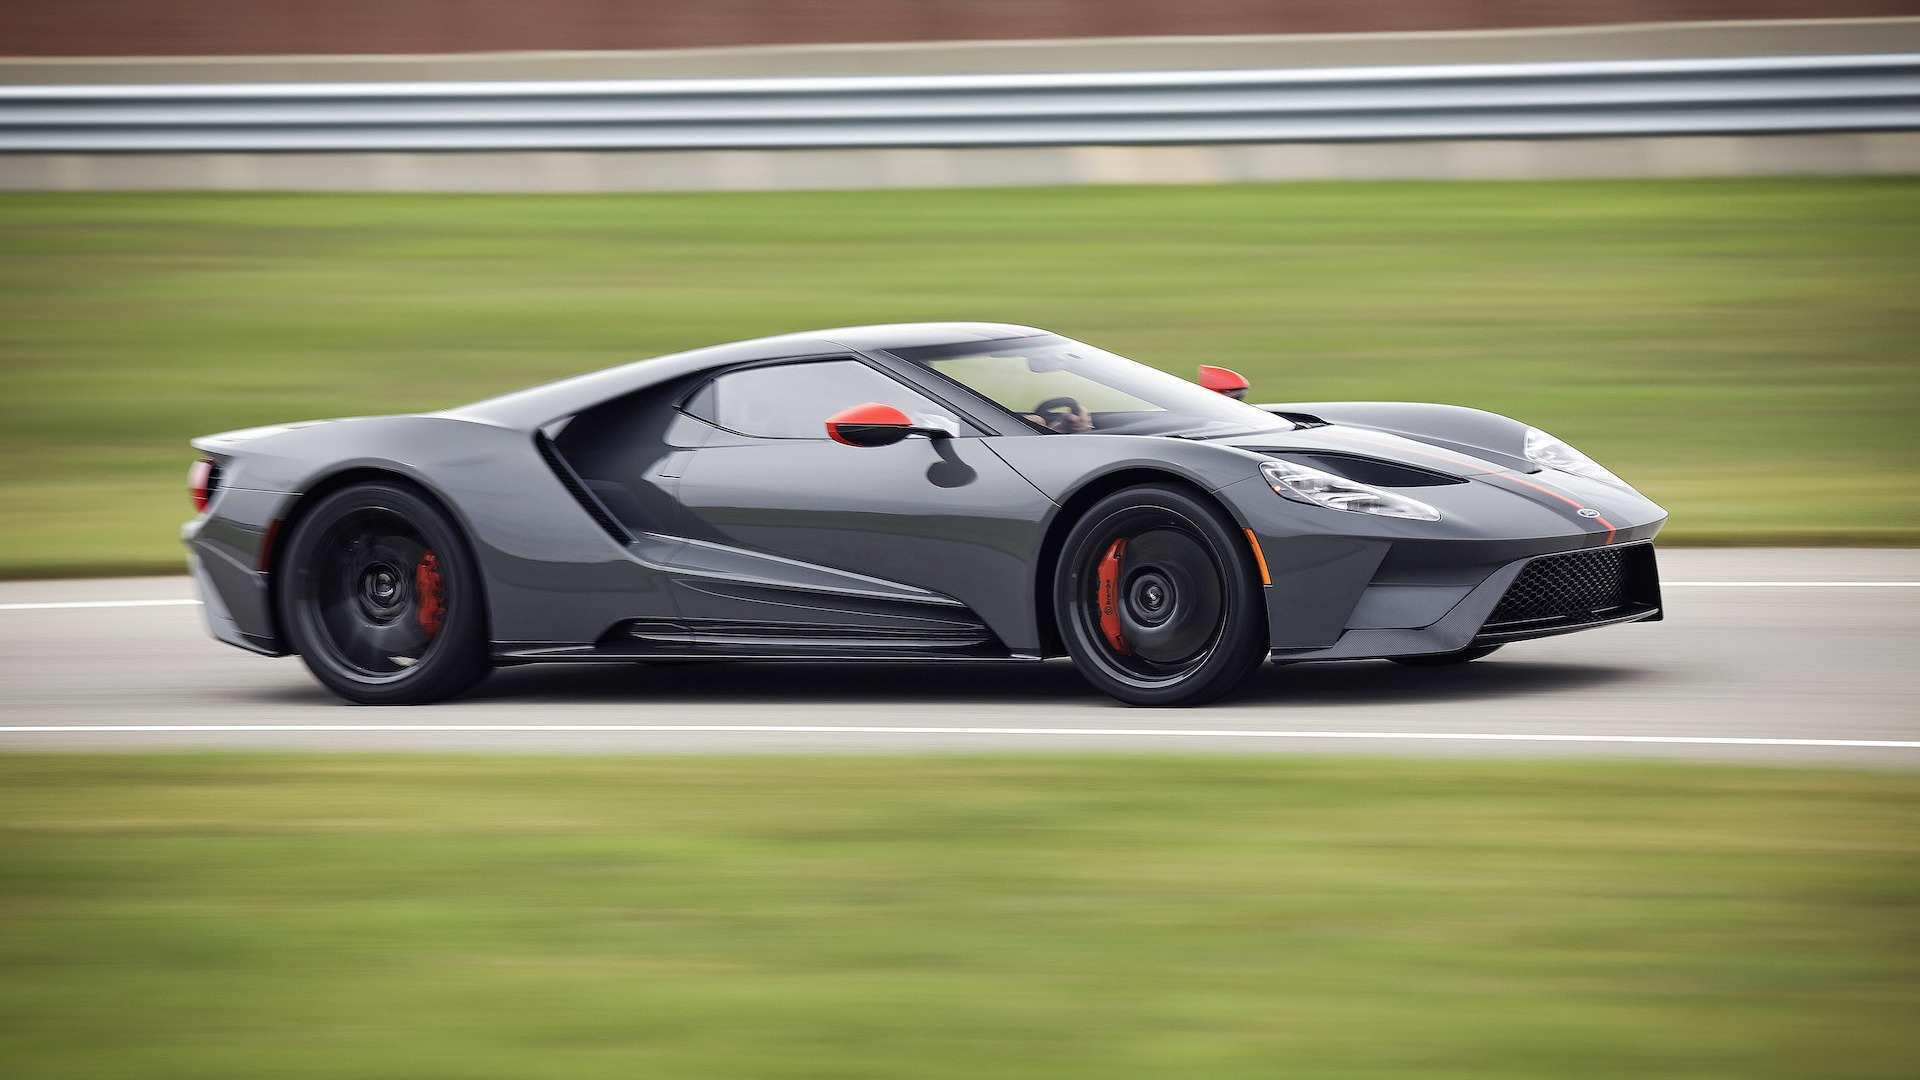 64 Gallery of 2019 Ford Gt Specs Spesification by 2019 Ford Gt Specs